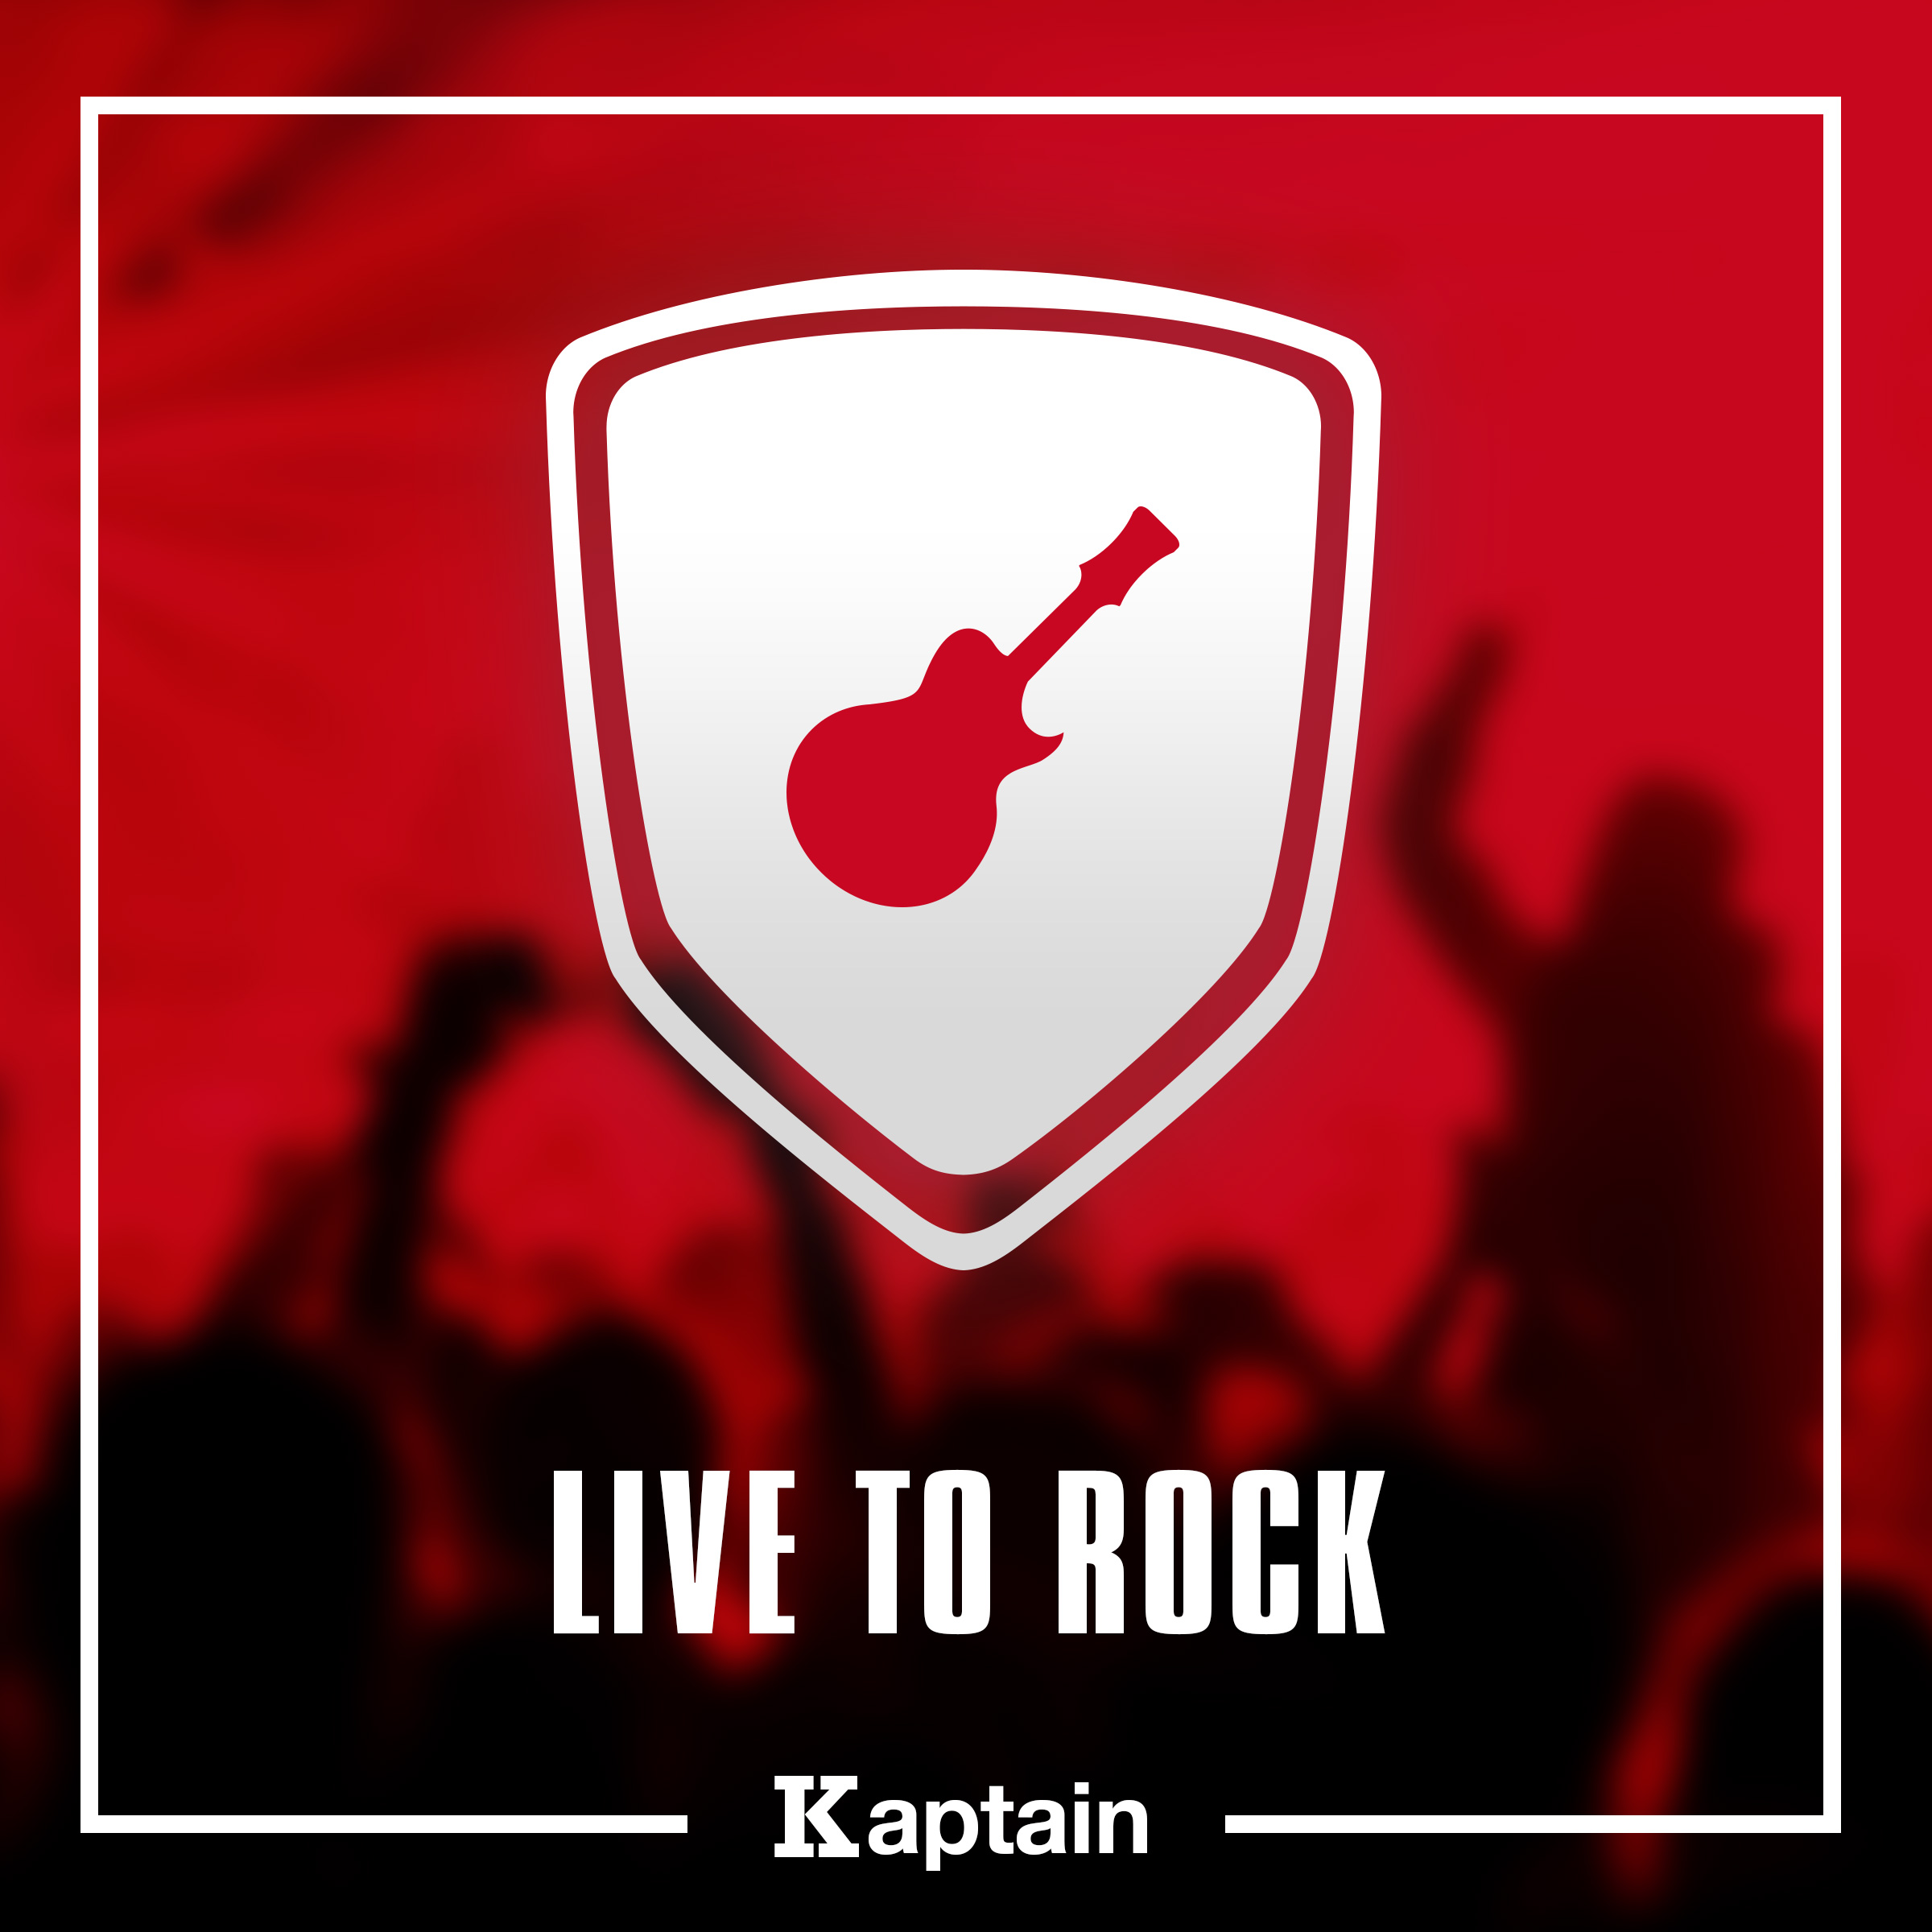 Live To Rock